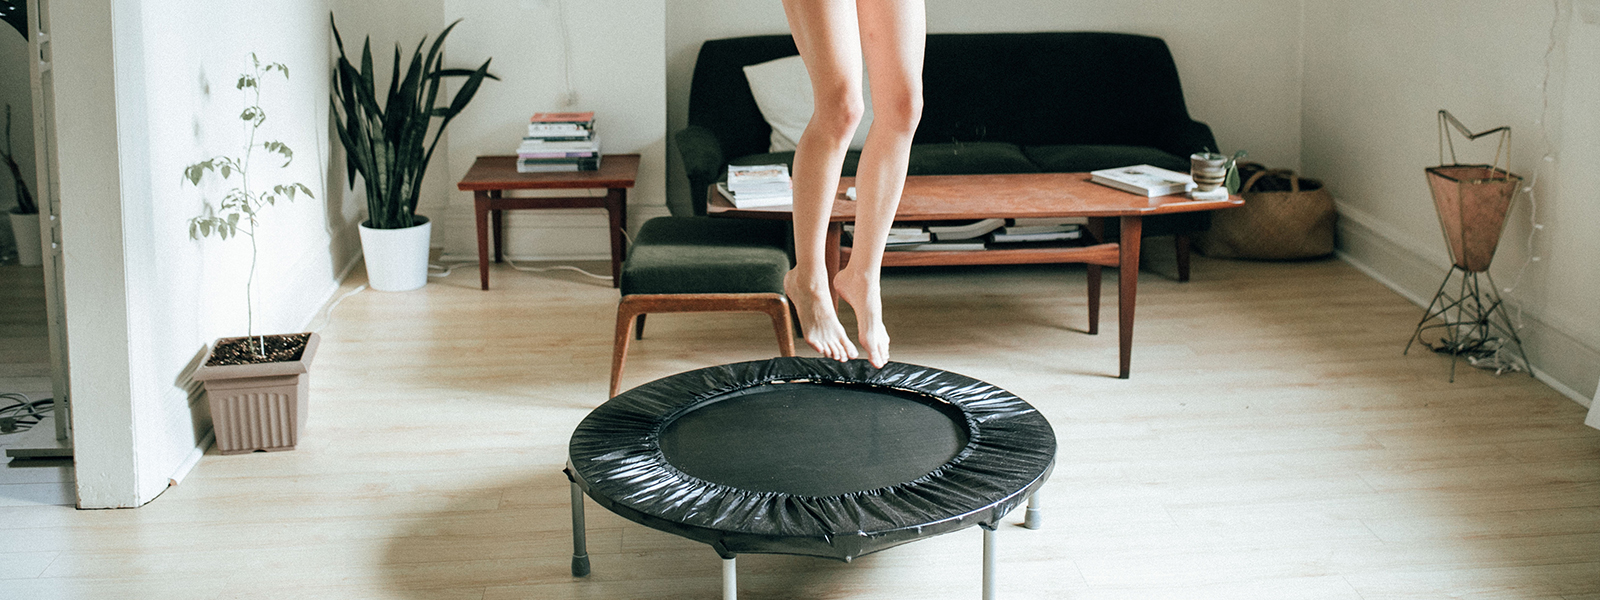 REBOUNDING: JUMPING FOR HEALTH